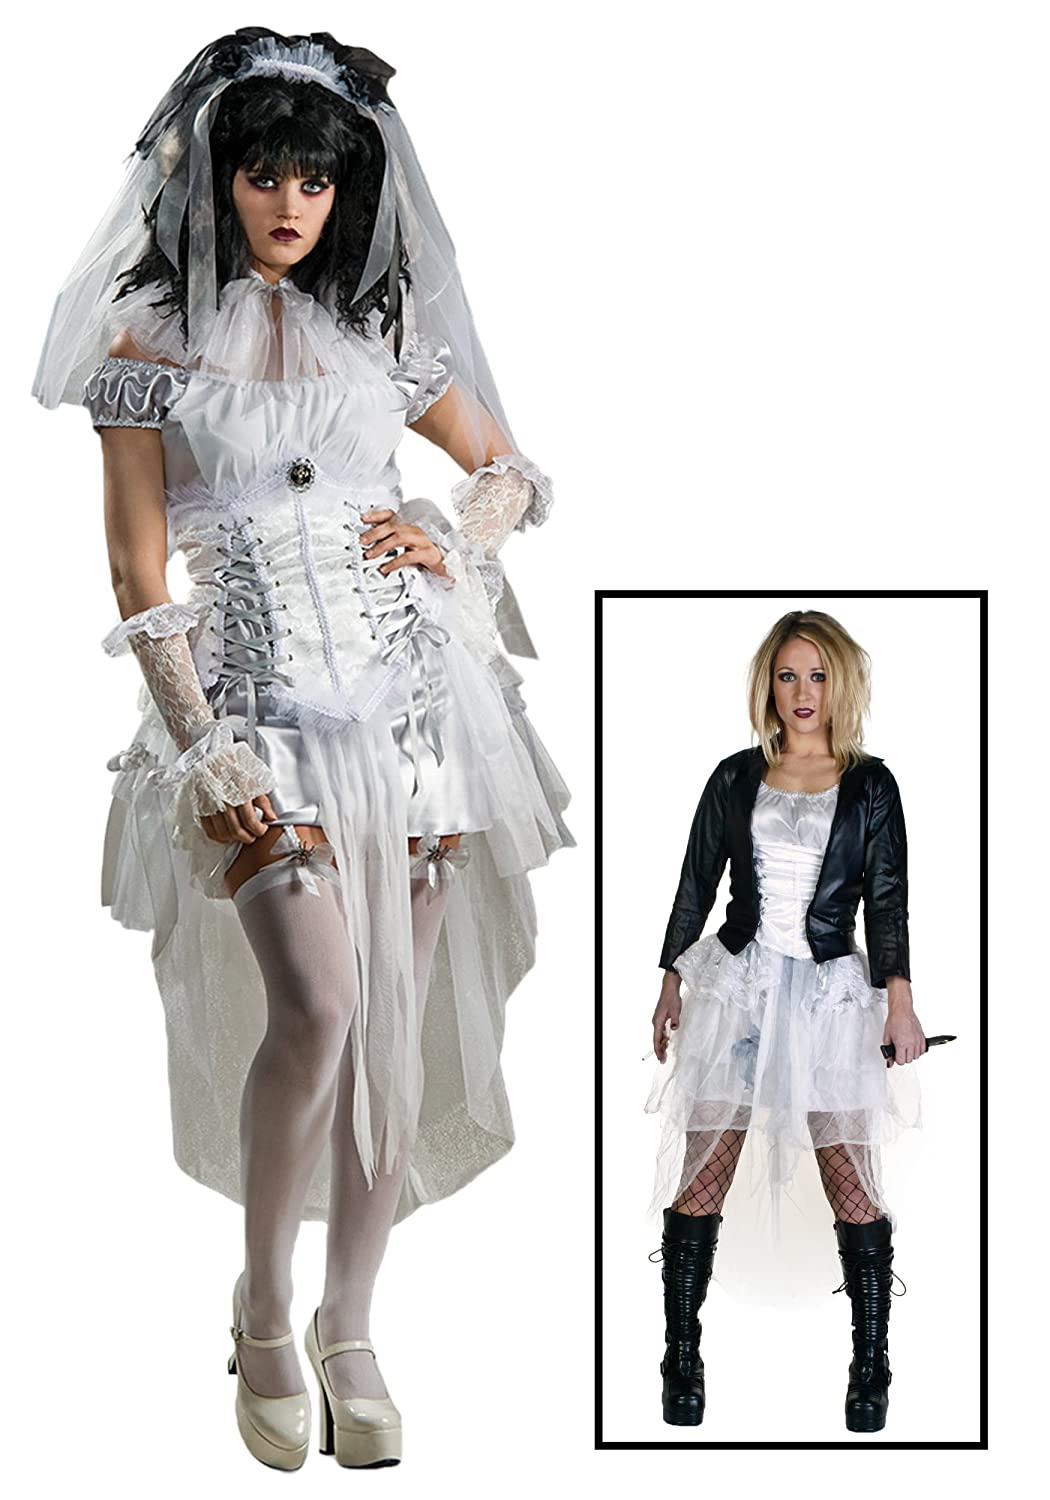 Bride of Chucky Costume Baby Gothic Bride of Chucky Costume